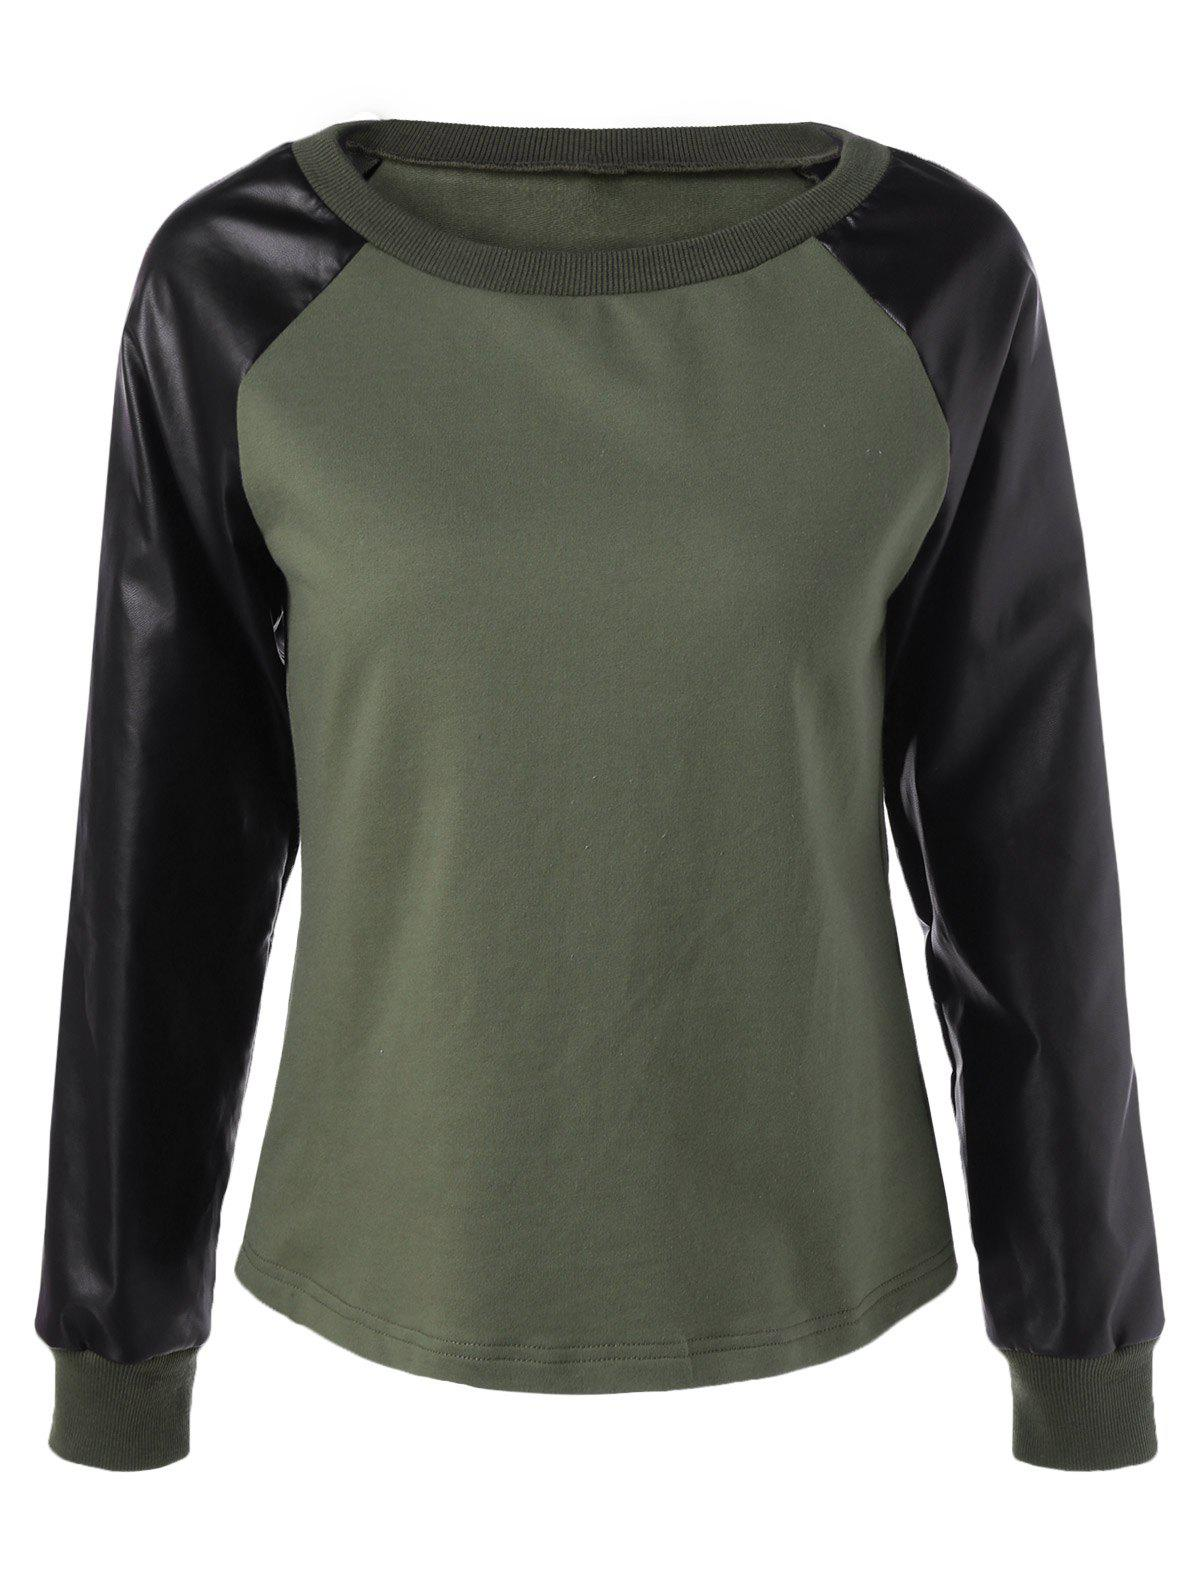 Chic Raglan Sleeve PU Patchwork SweatshirtWOMEN<br><br>Size: S; Color: ARMY GREEN; Material: Polyester; Shirt Length: Short; Sleeve Length: Full; Style: Fashion; Pattern Style: Patchwork; Season: Fall,Spring; Weight: 0.2700kg; Package Contents: 1 x Sweatshirt;